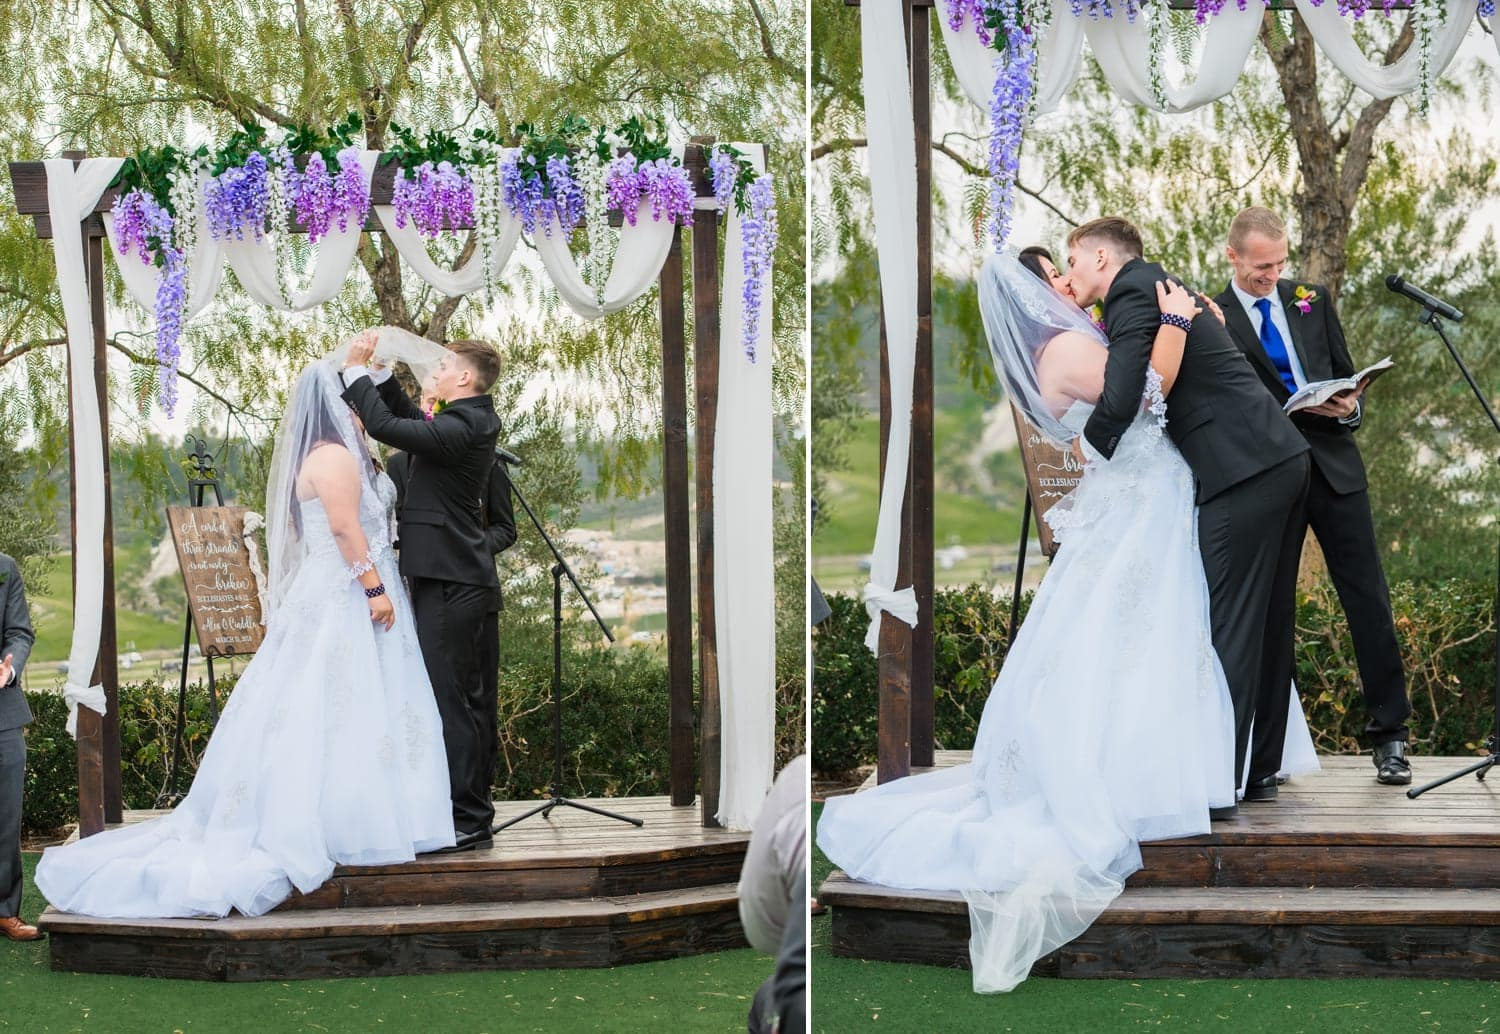 Photograph of a bride and groom having their first kiss as husband and wife.